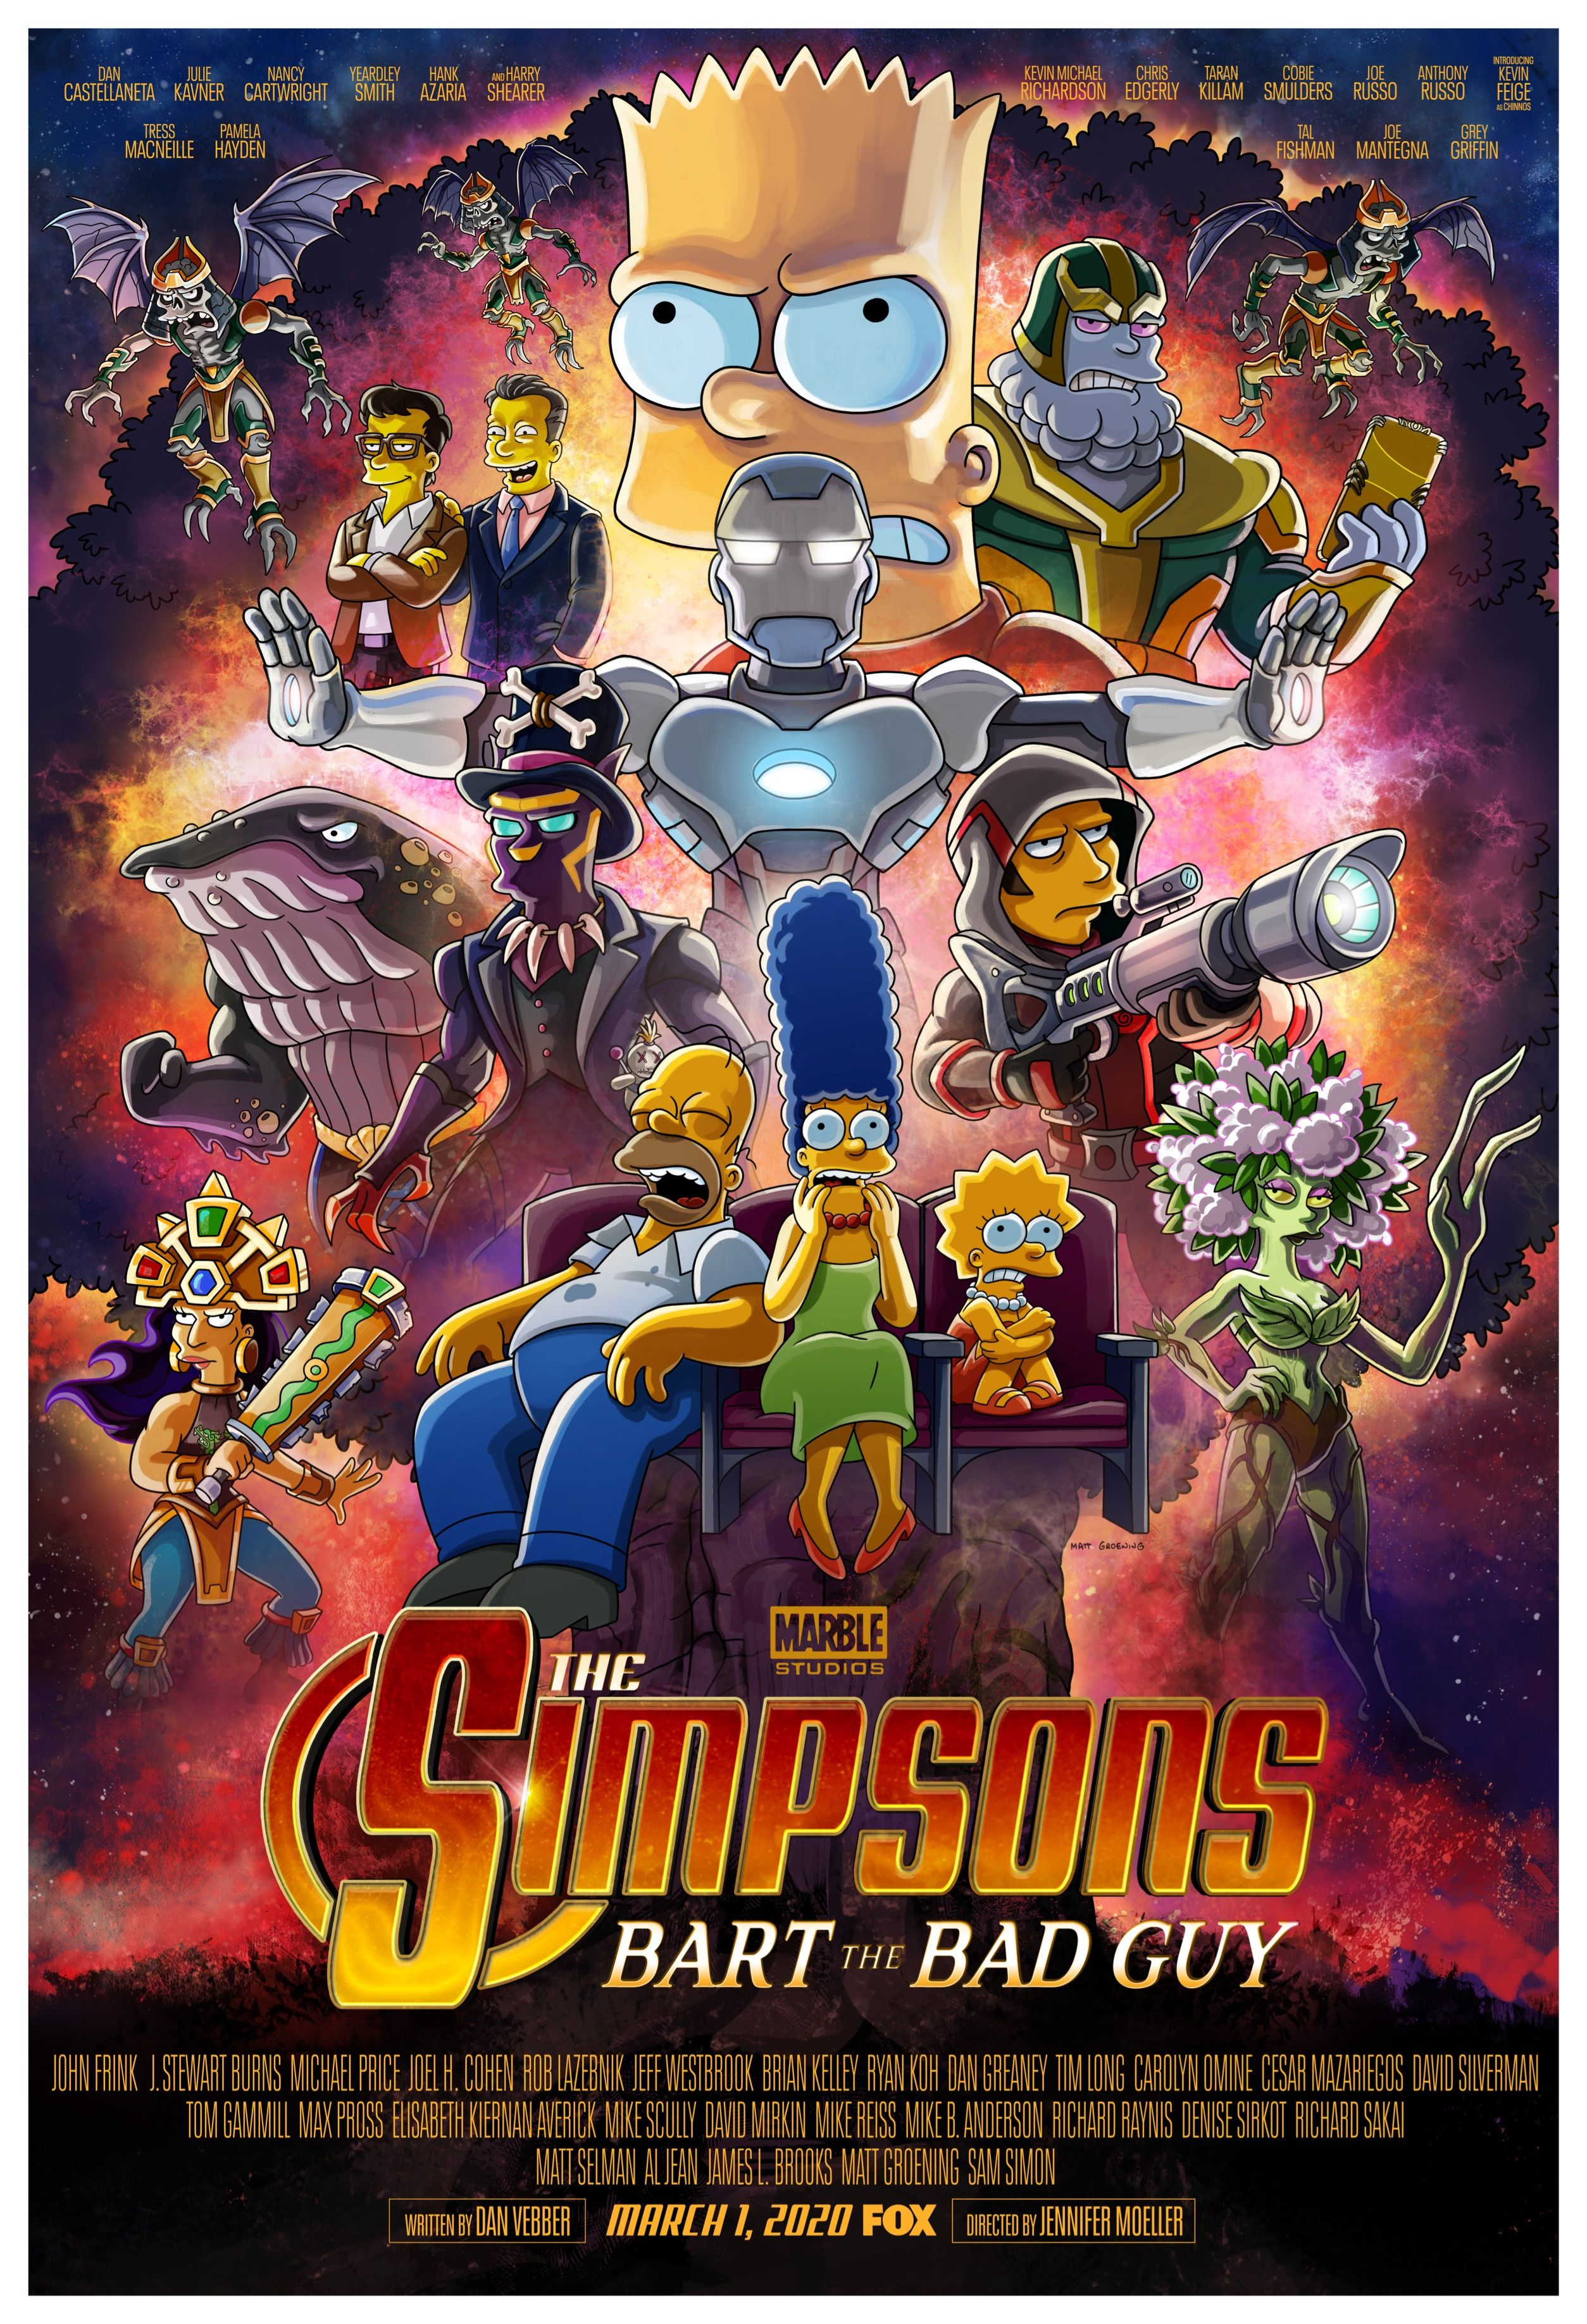 The Simpsons Take On Avengers: Endgame in New Post